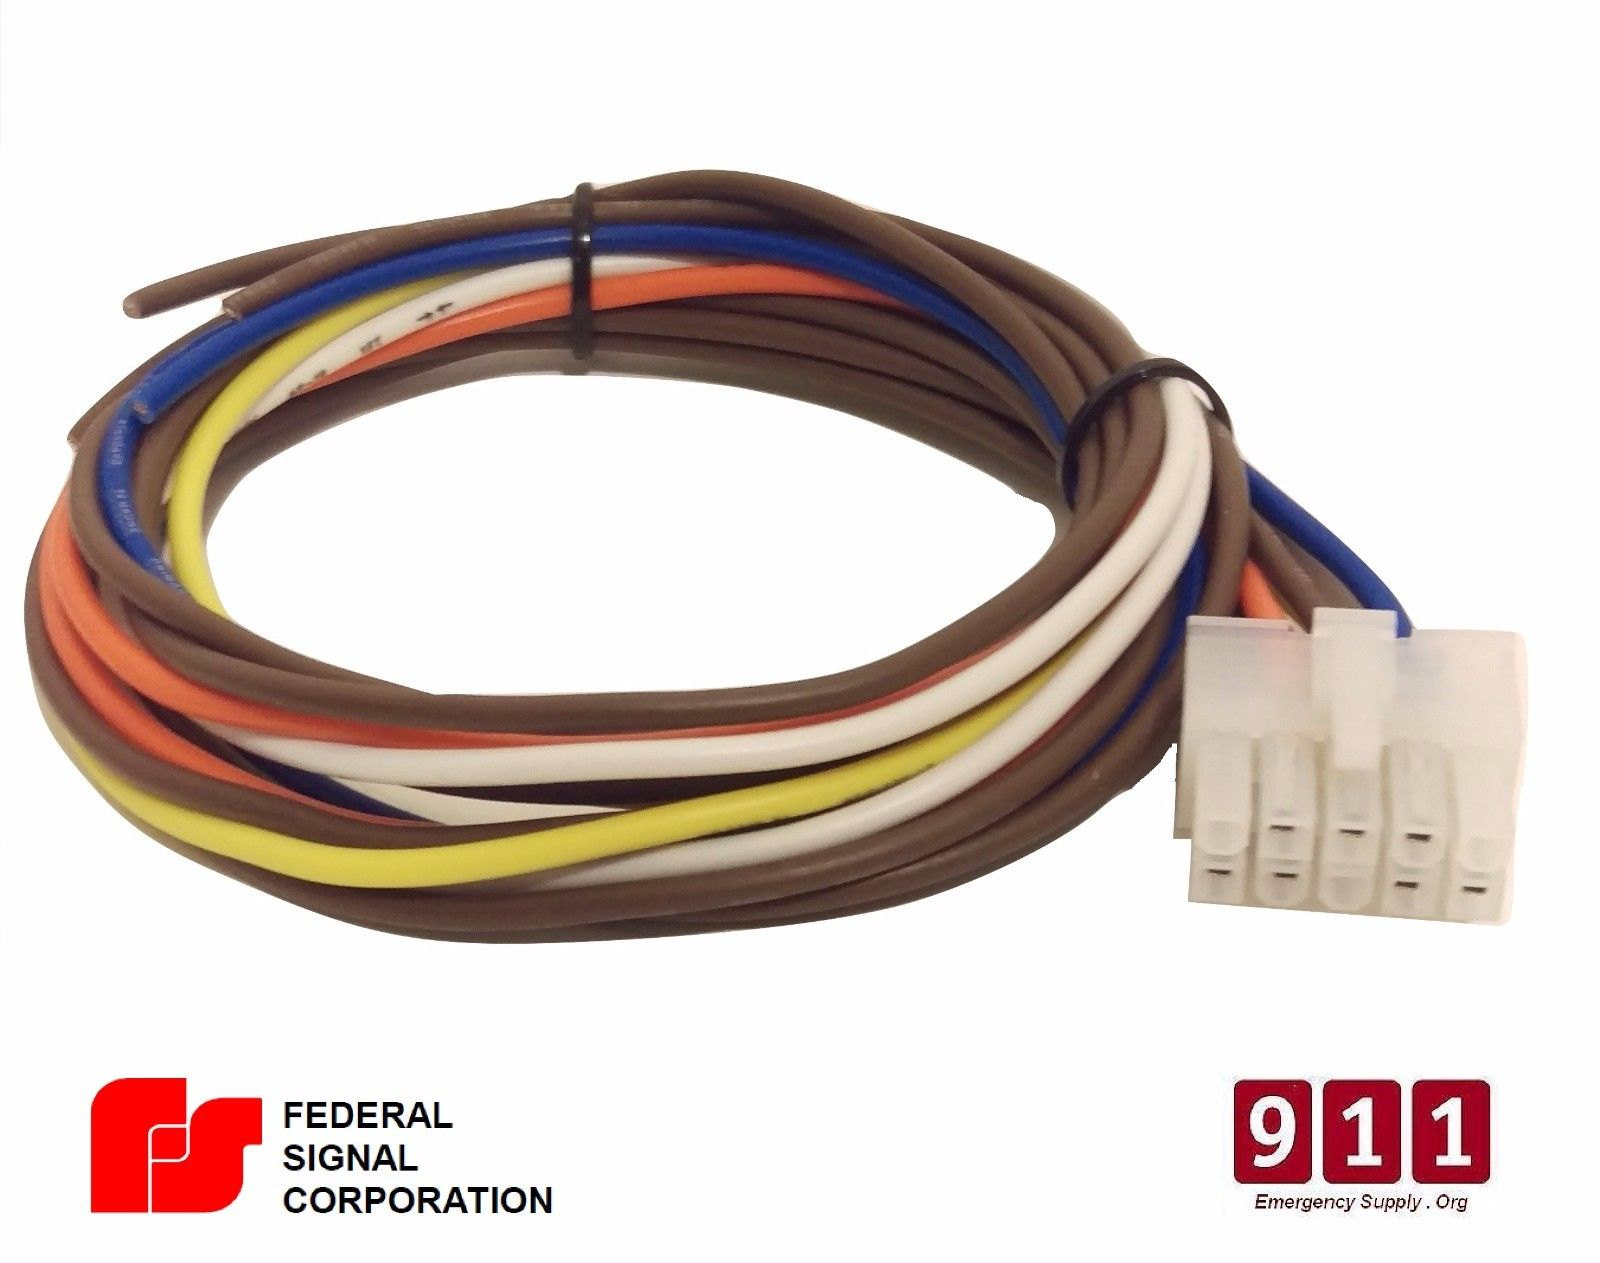 Federal Signal Siren Power Harness 10 Pin Cable PA300 690002 on